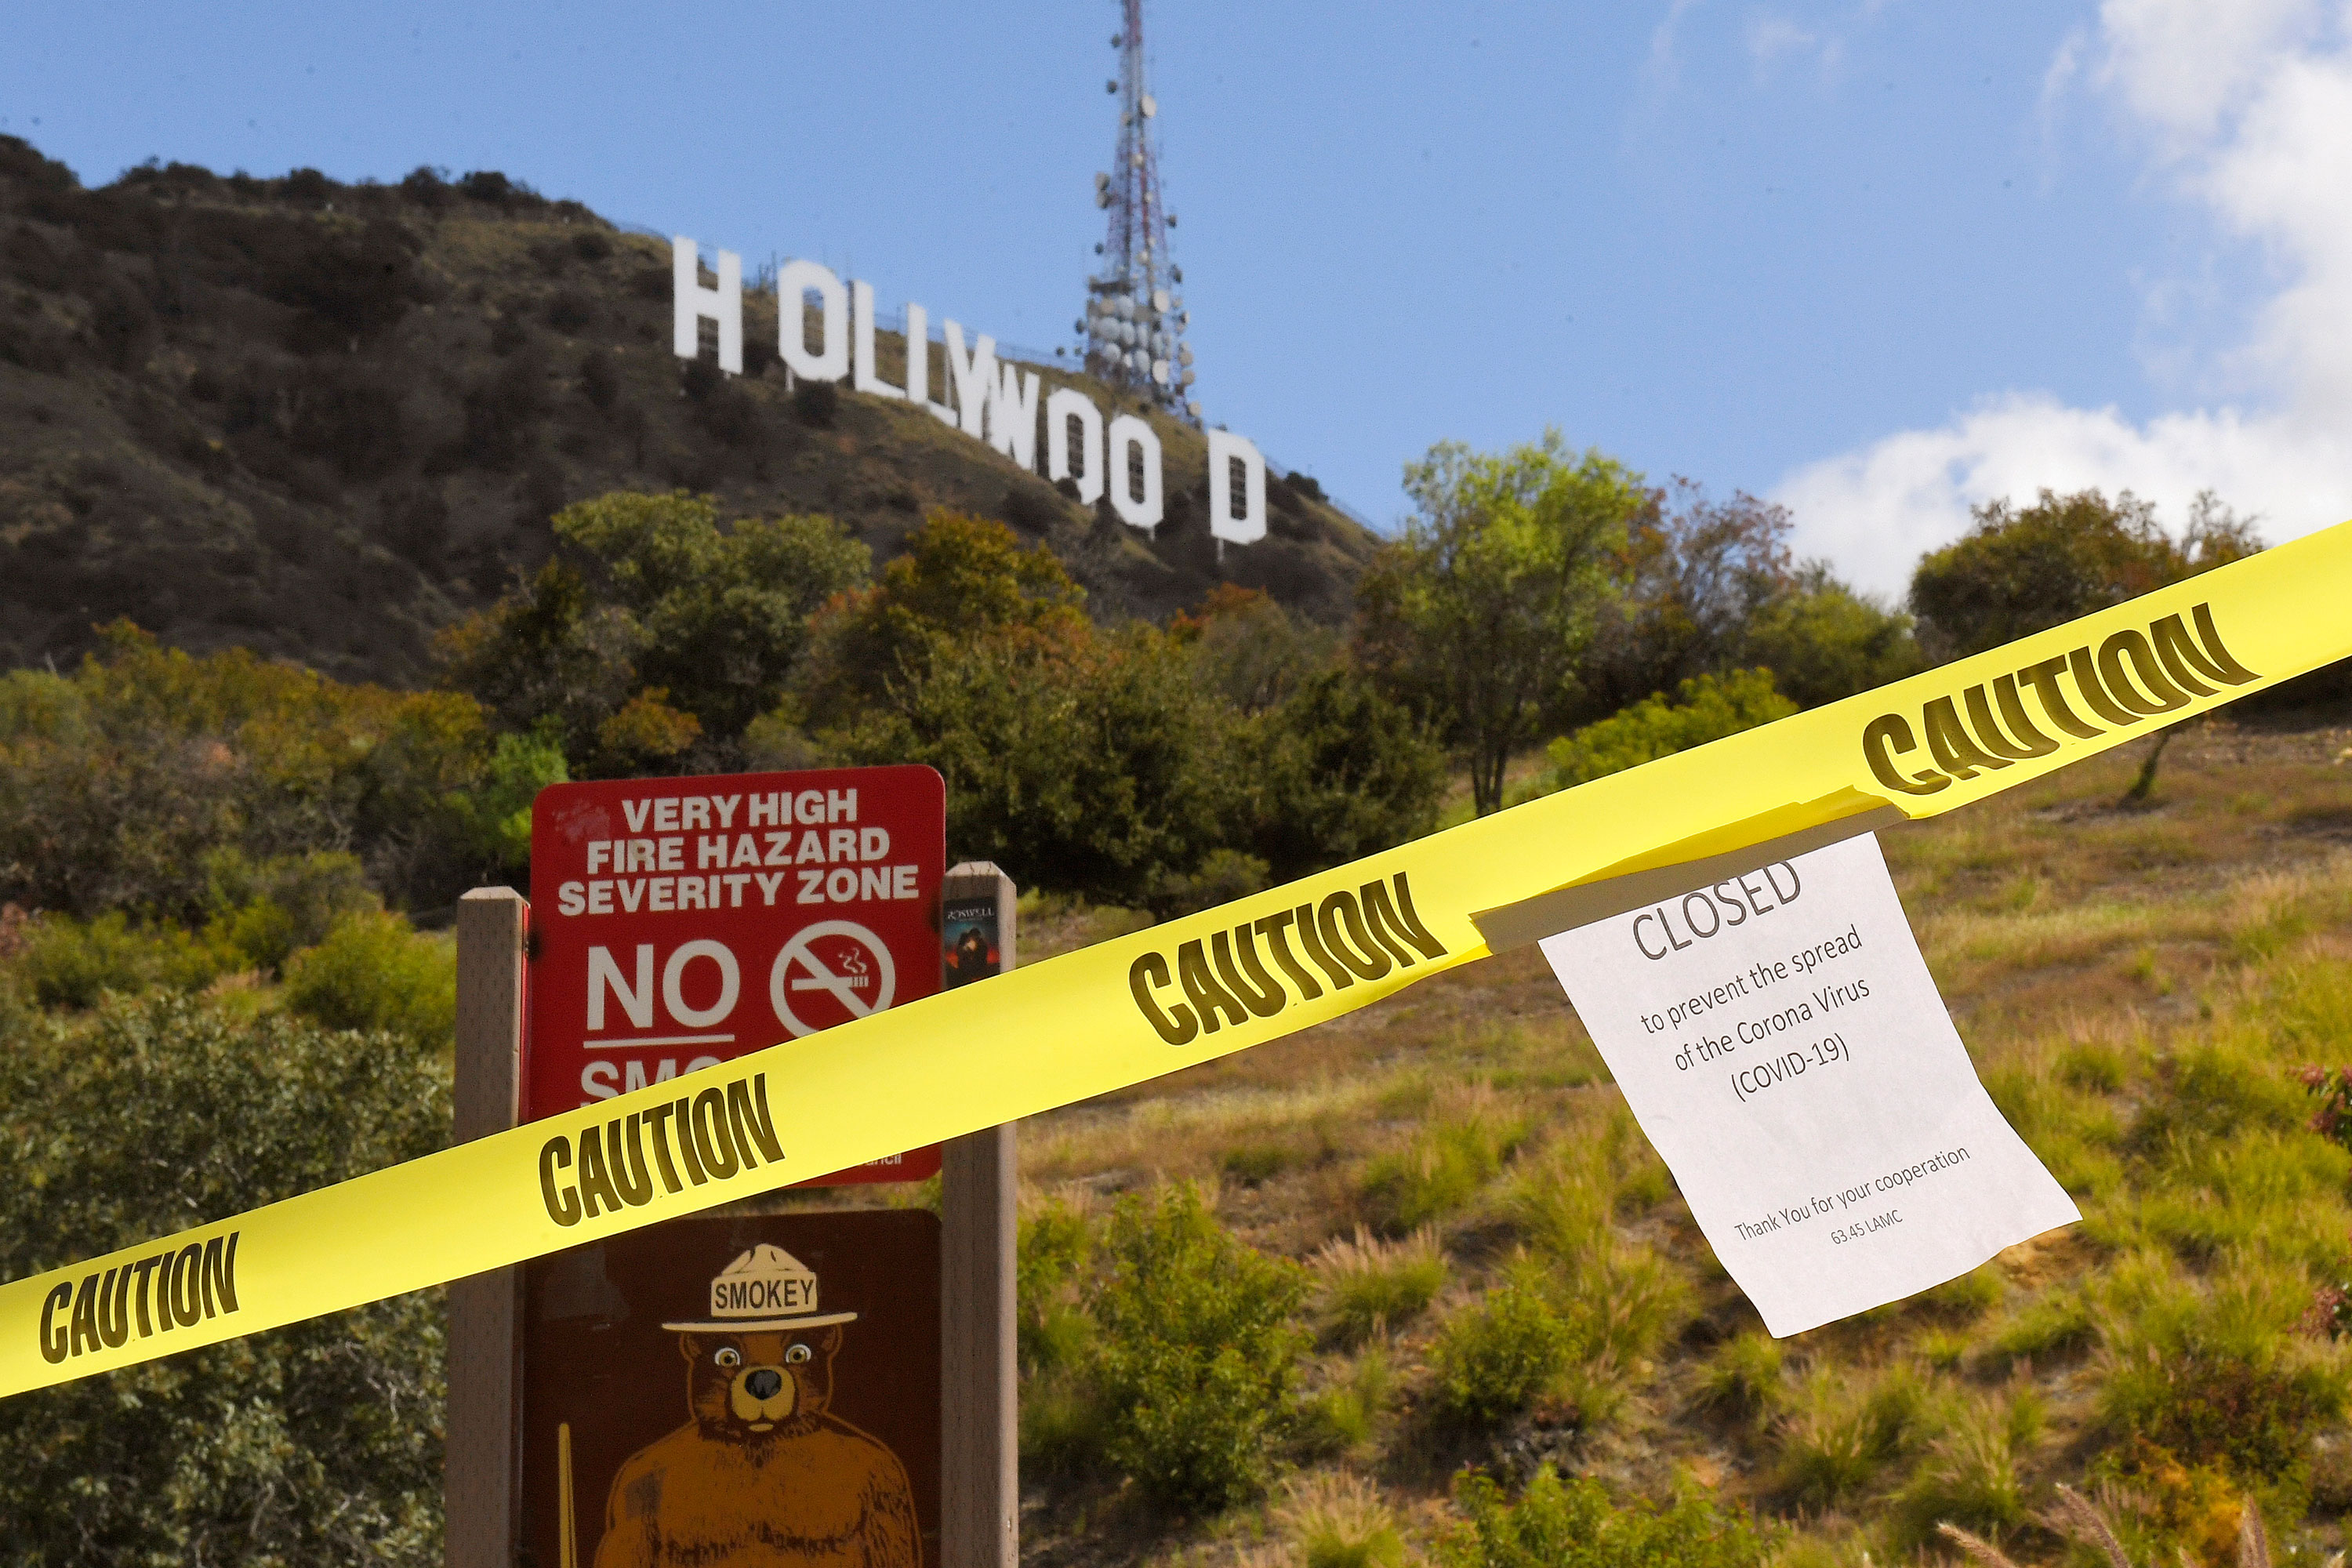 A sign about the closure of the Innsdale Trail is posted at the trail's entrance near the Hollywood sign in Los Angeles on March 28.